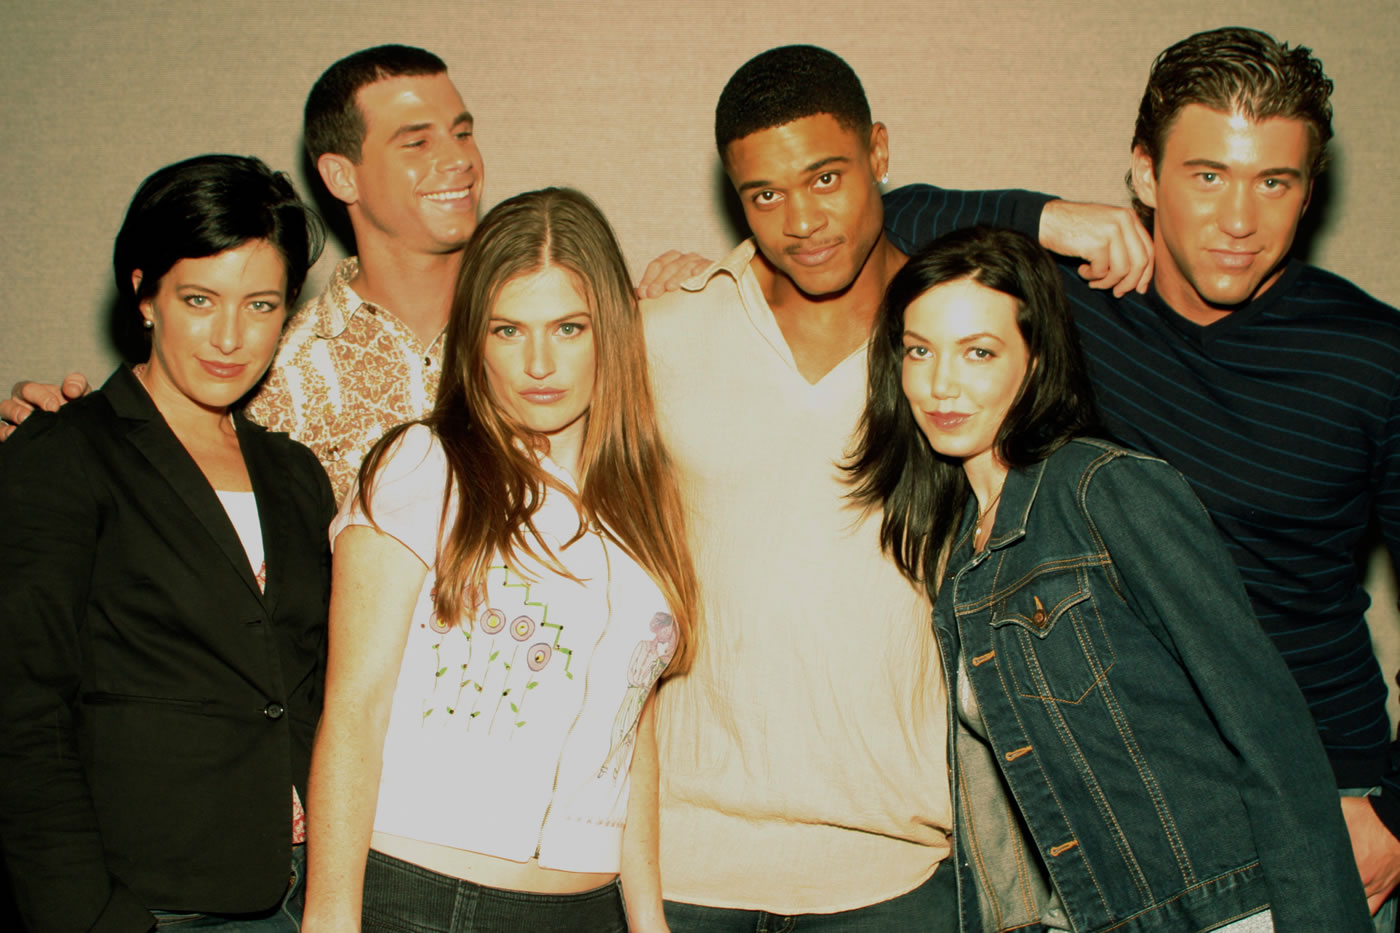 With Brooke Barr, Jonas Barrish, Kelly Chambers, Pooch Hall and Jon Prutow